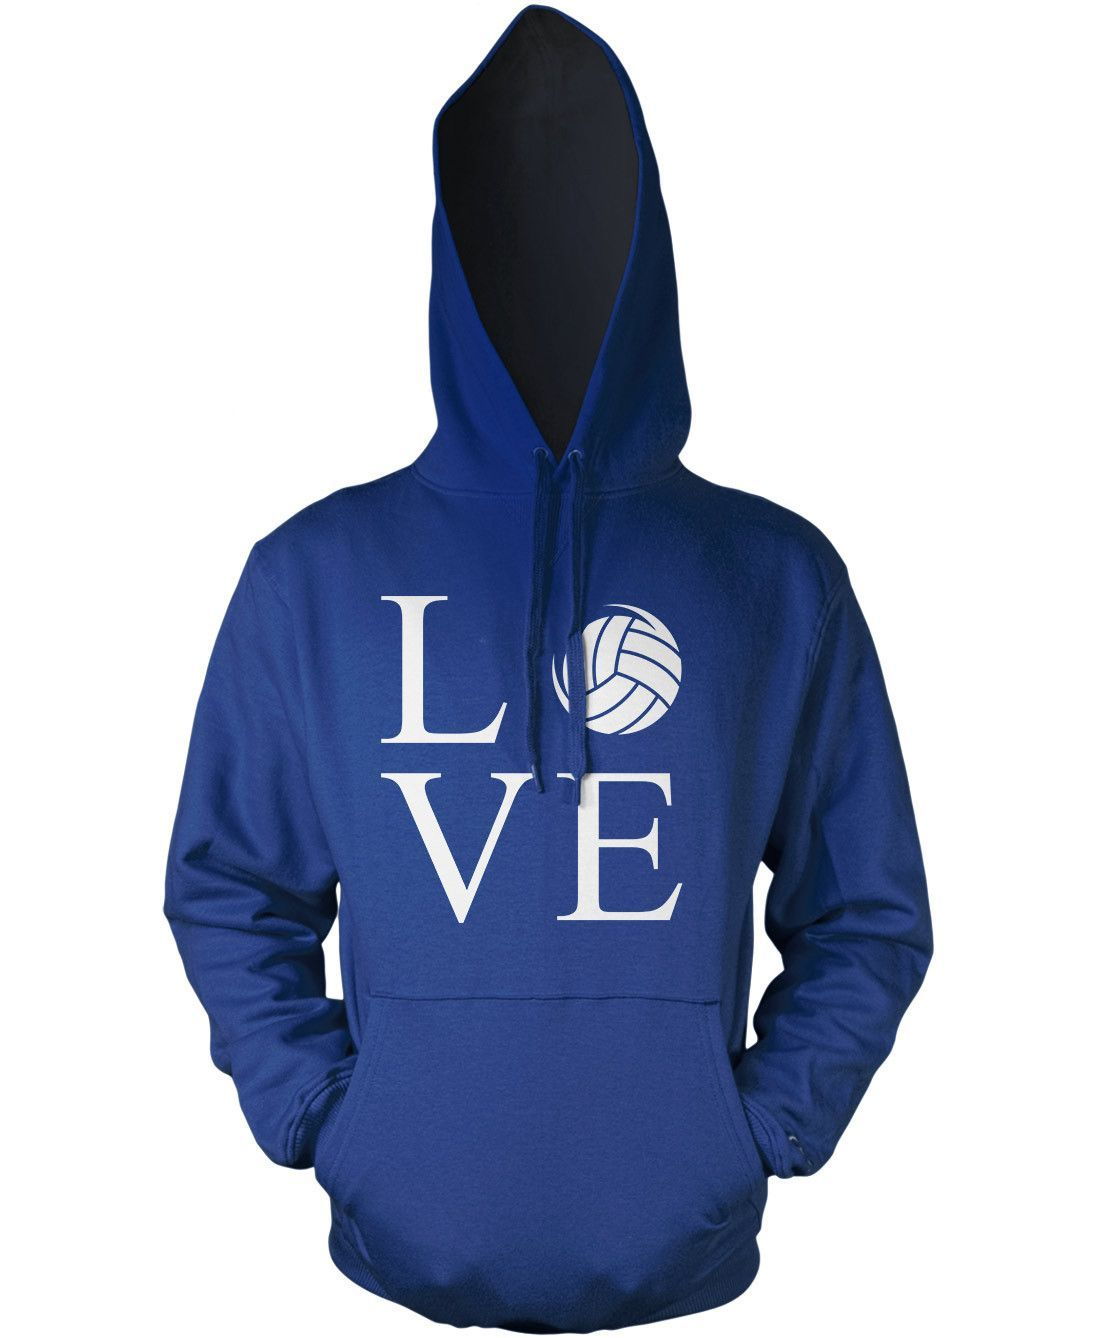 Love Volleyball The perfect t-shirt for any proud Volleyball player! Order yours today! Premium, Women's Fit & Long Sleeve T-Shirts Made from 100% pre-shrunk cotton jersey. Heathered colors contain pa